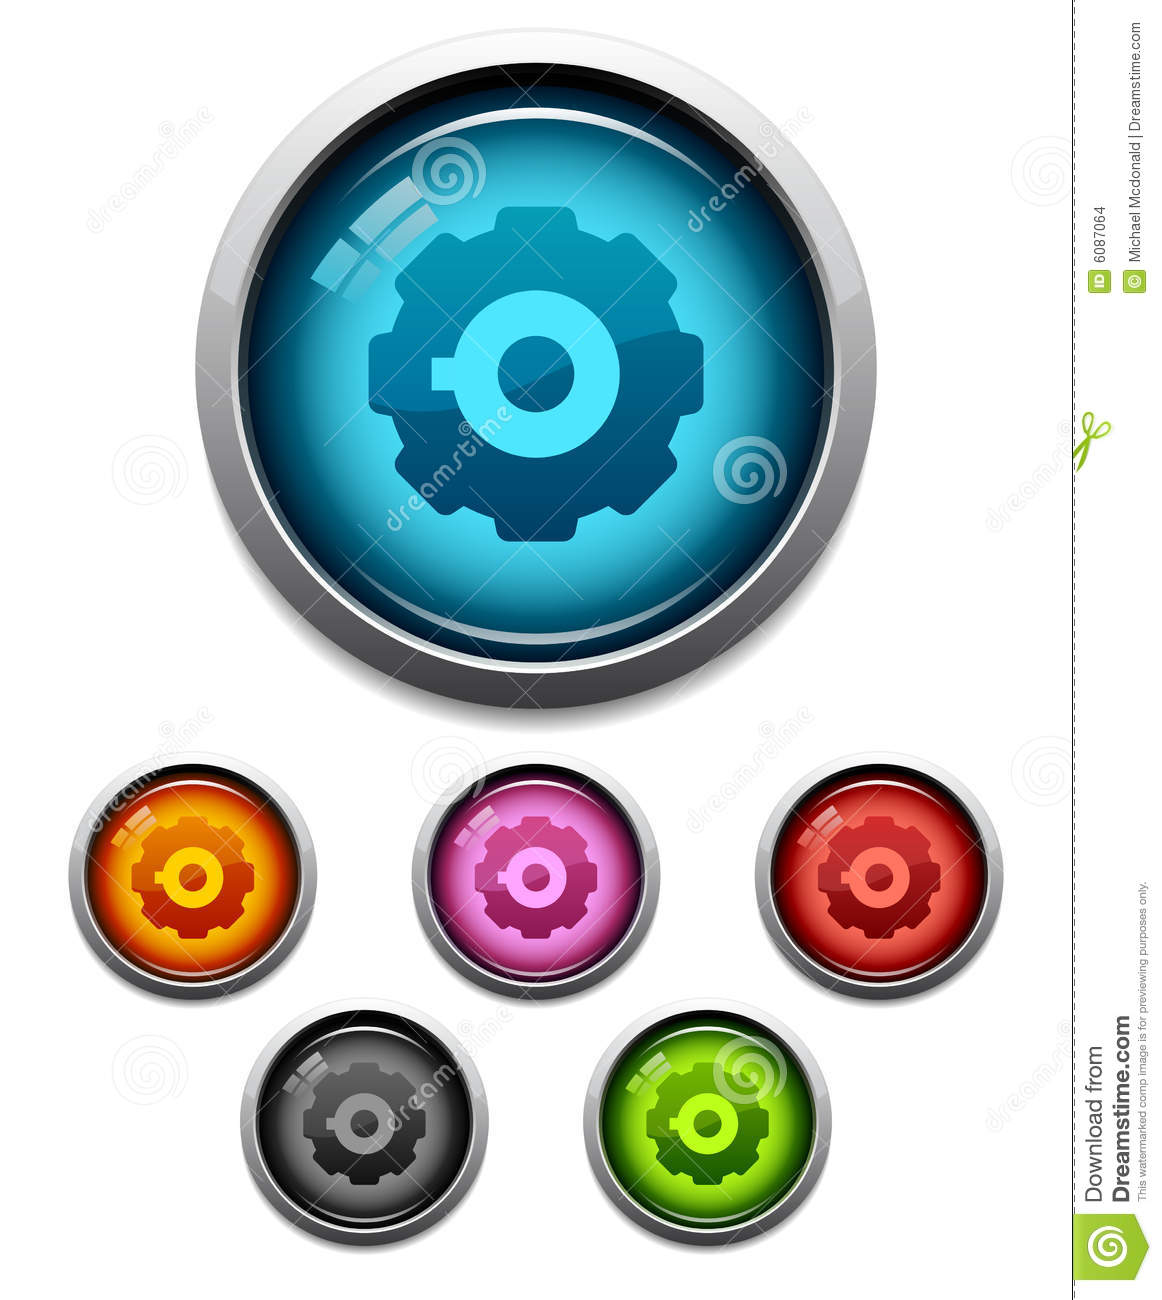 Gear button icon